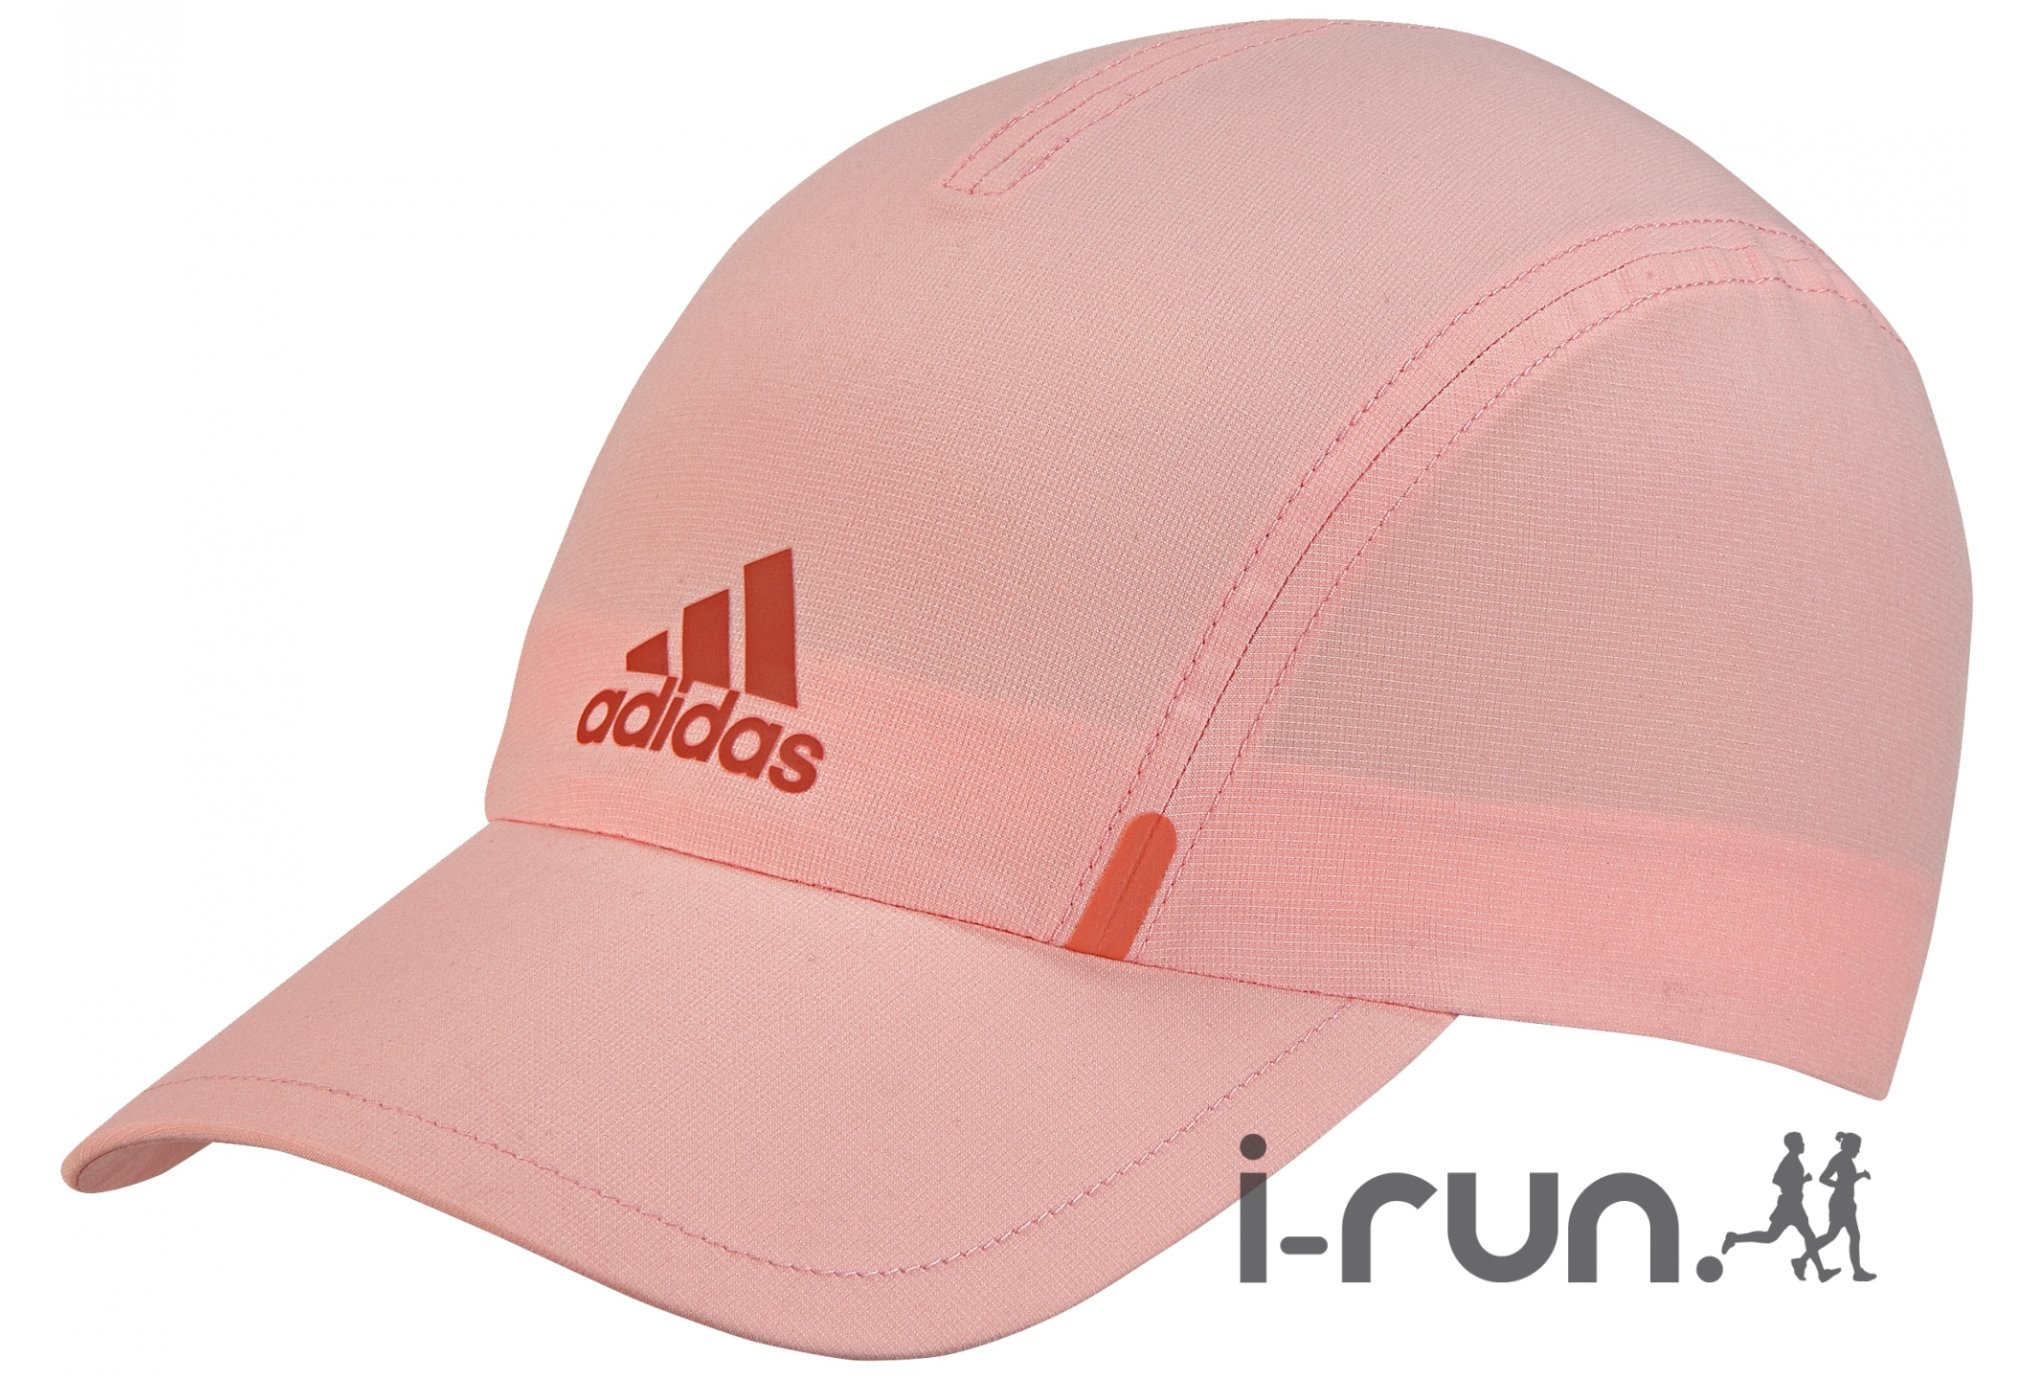 Adidas Climalite running w casquettes / bandeaux